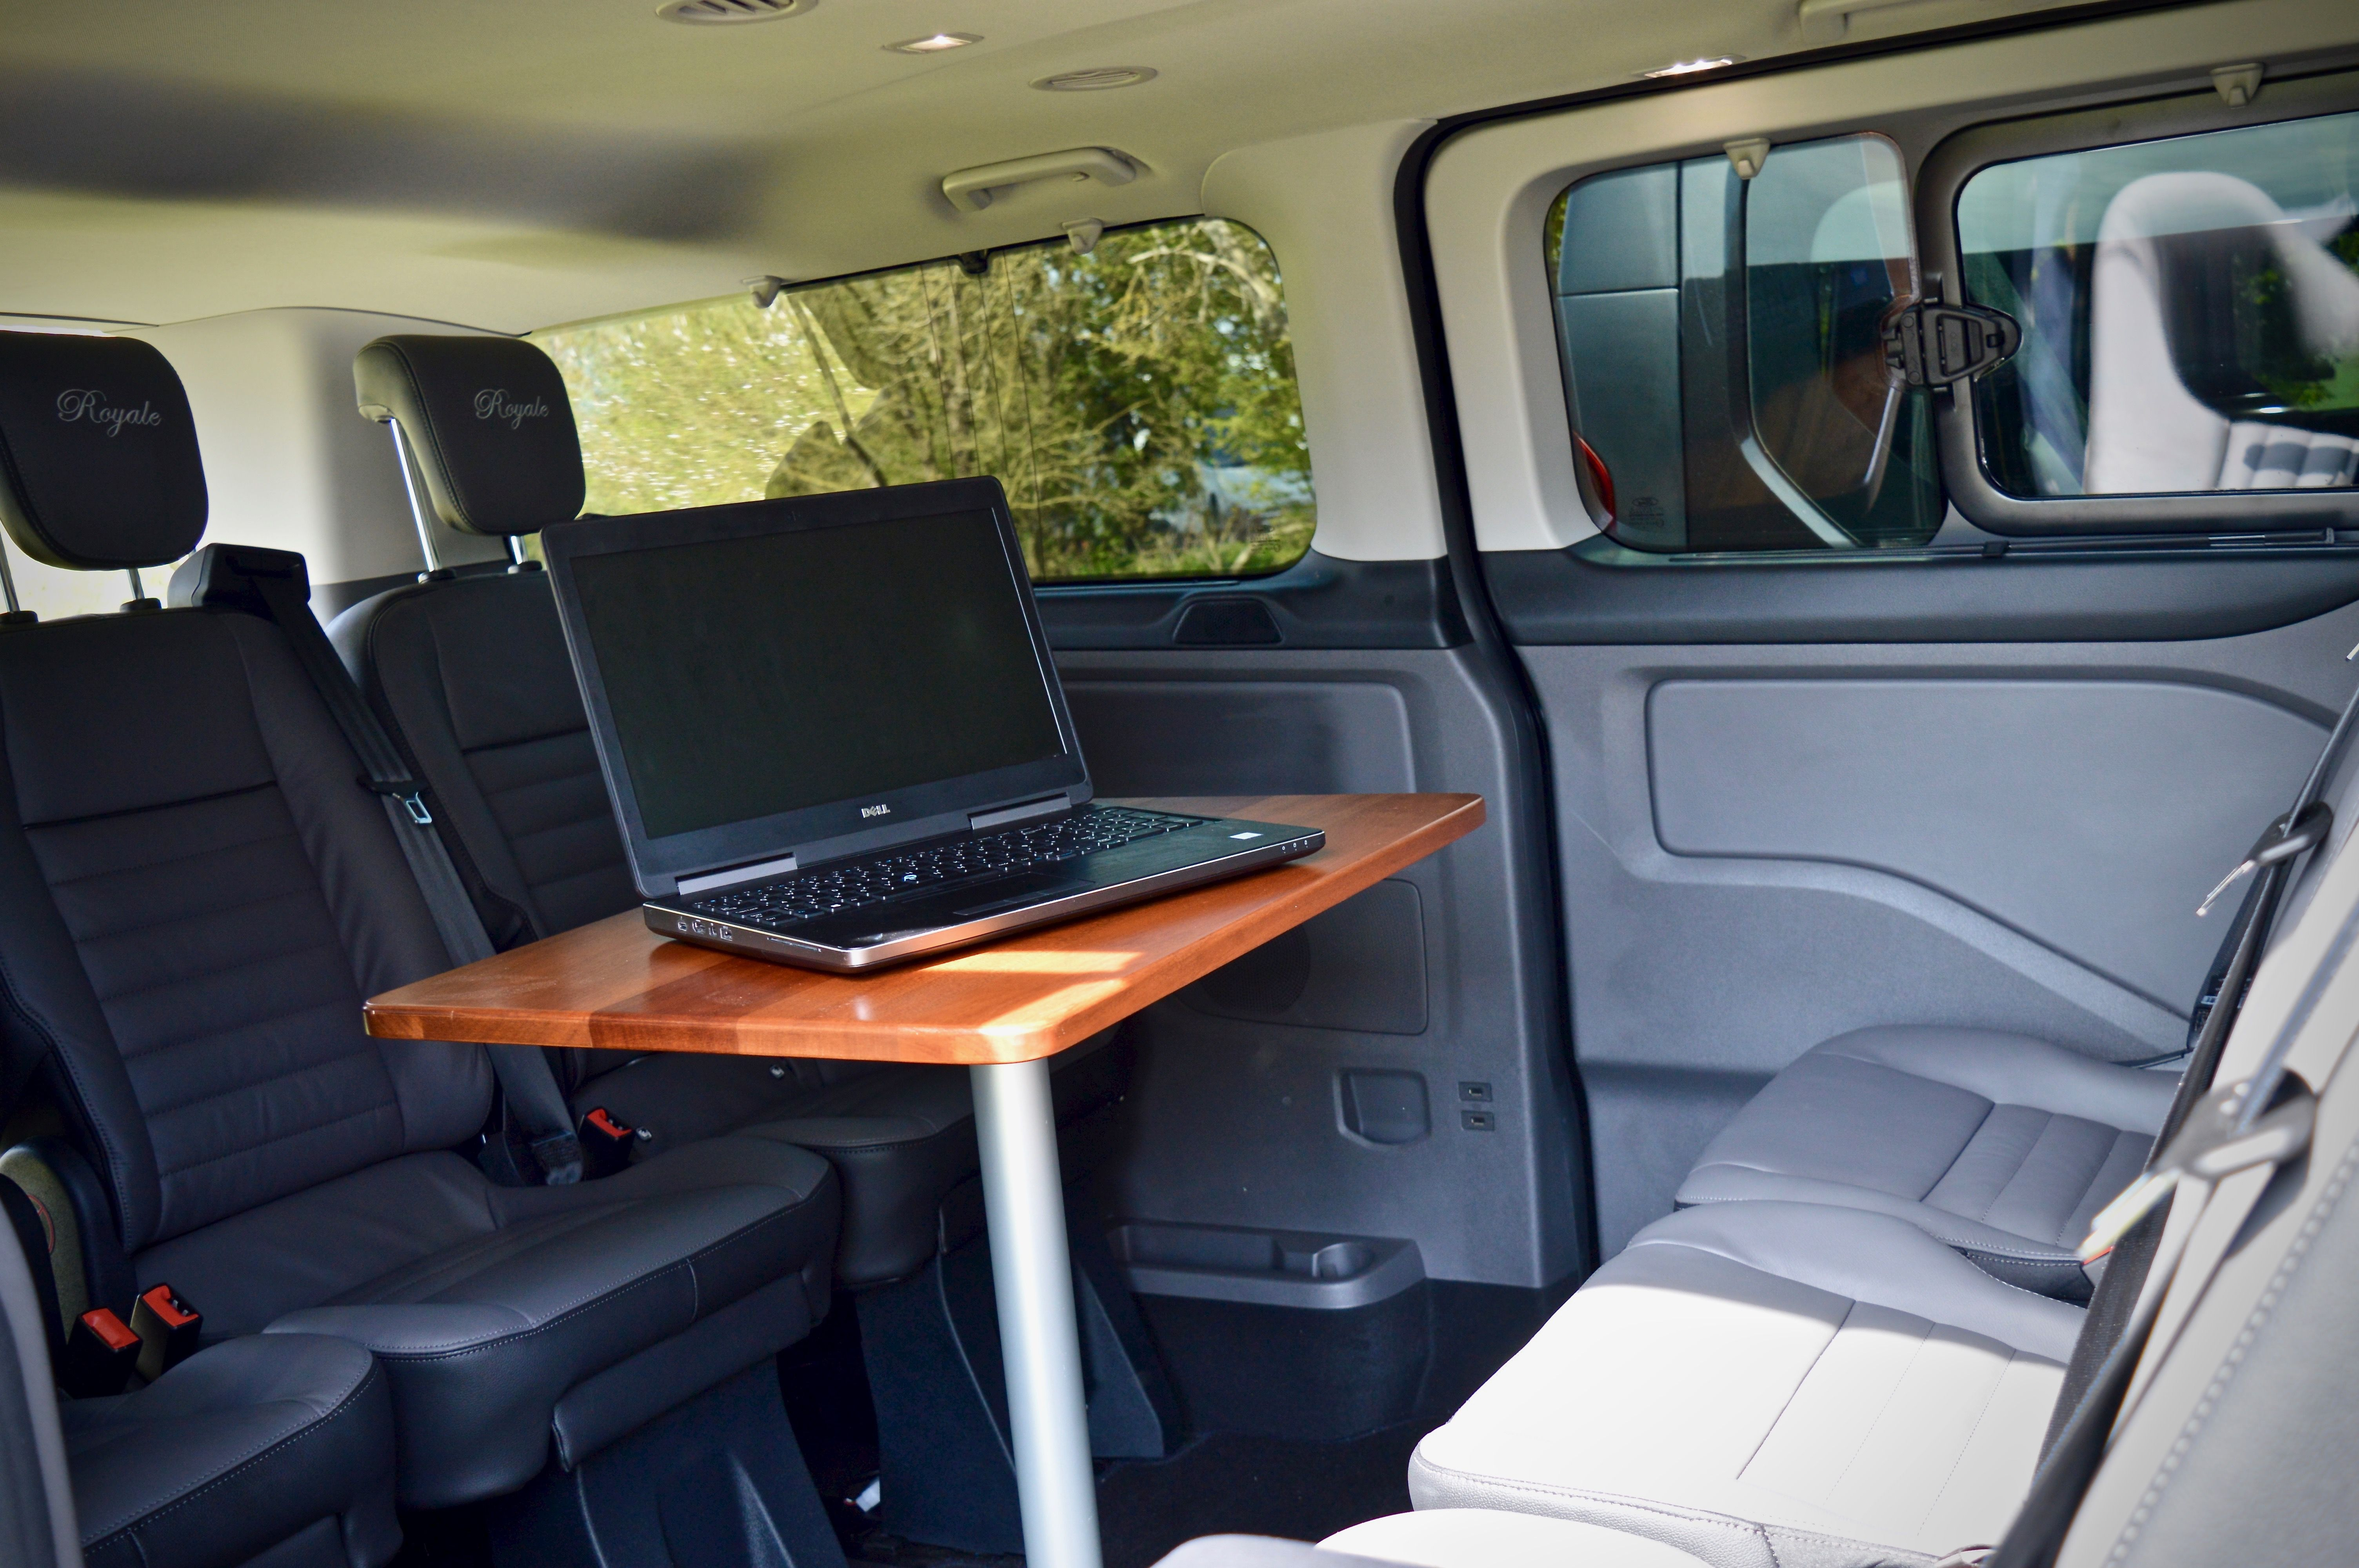 A possible use of the table within the taxis, can be used for business use including laptops